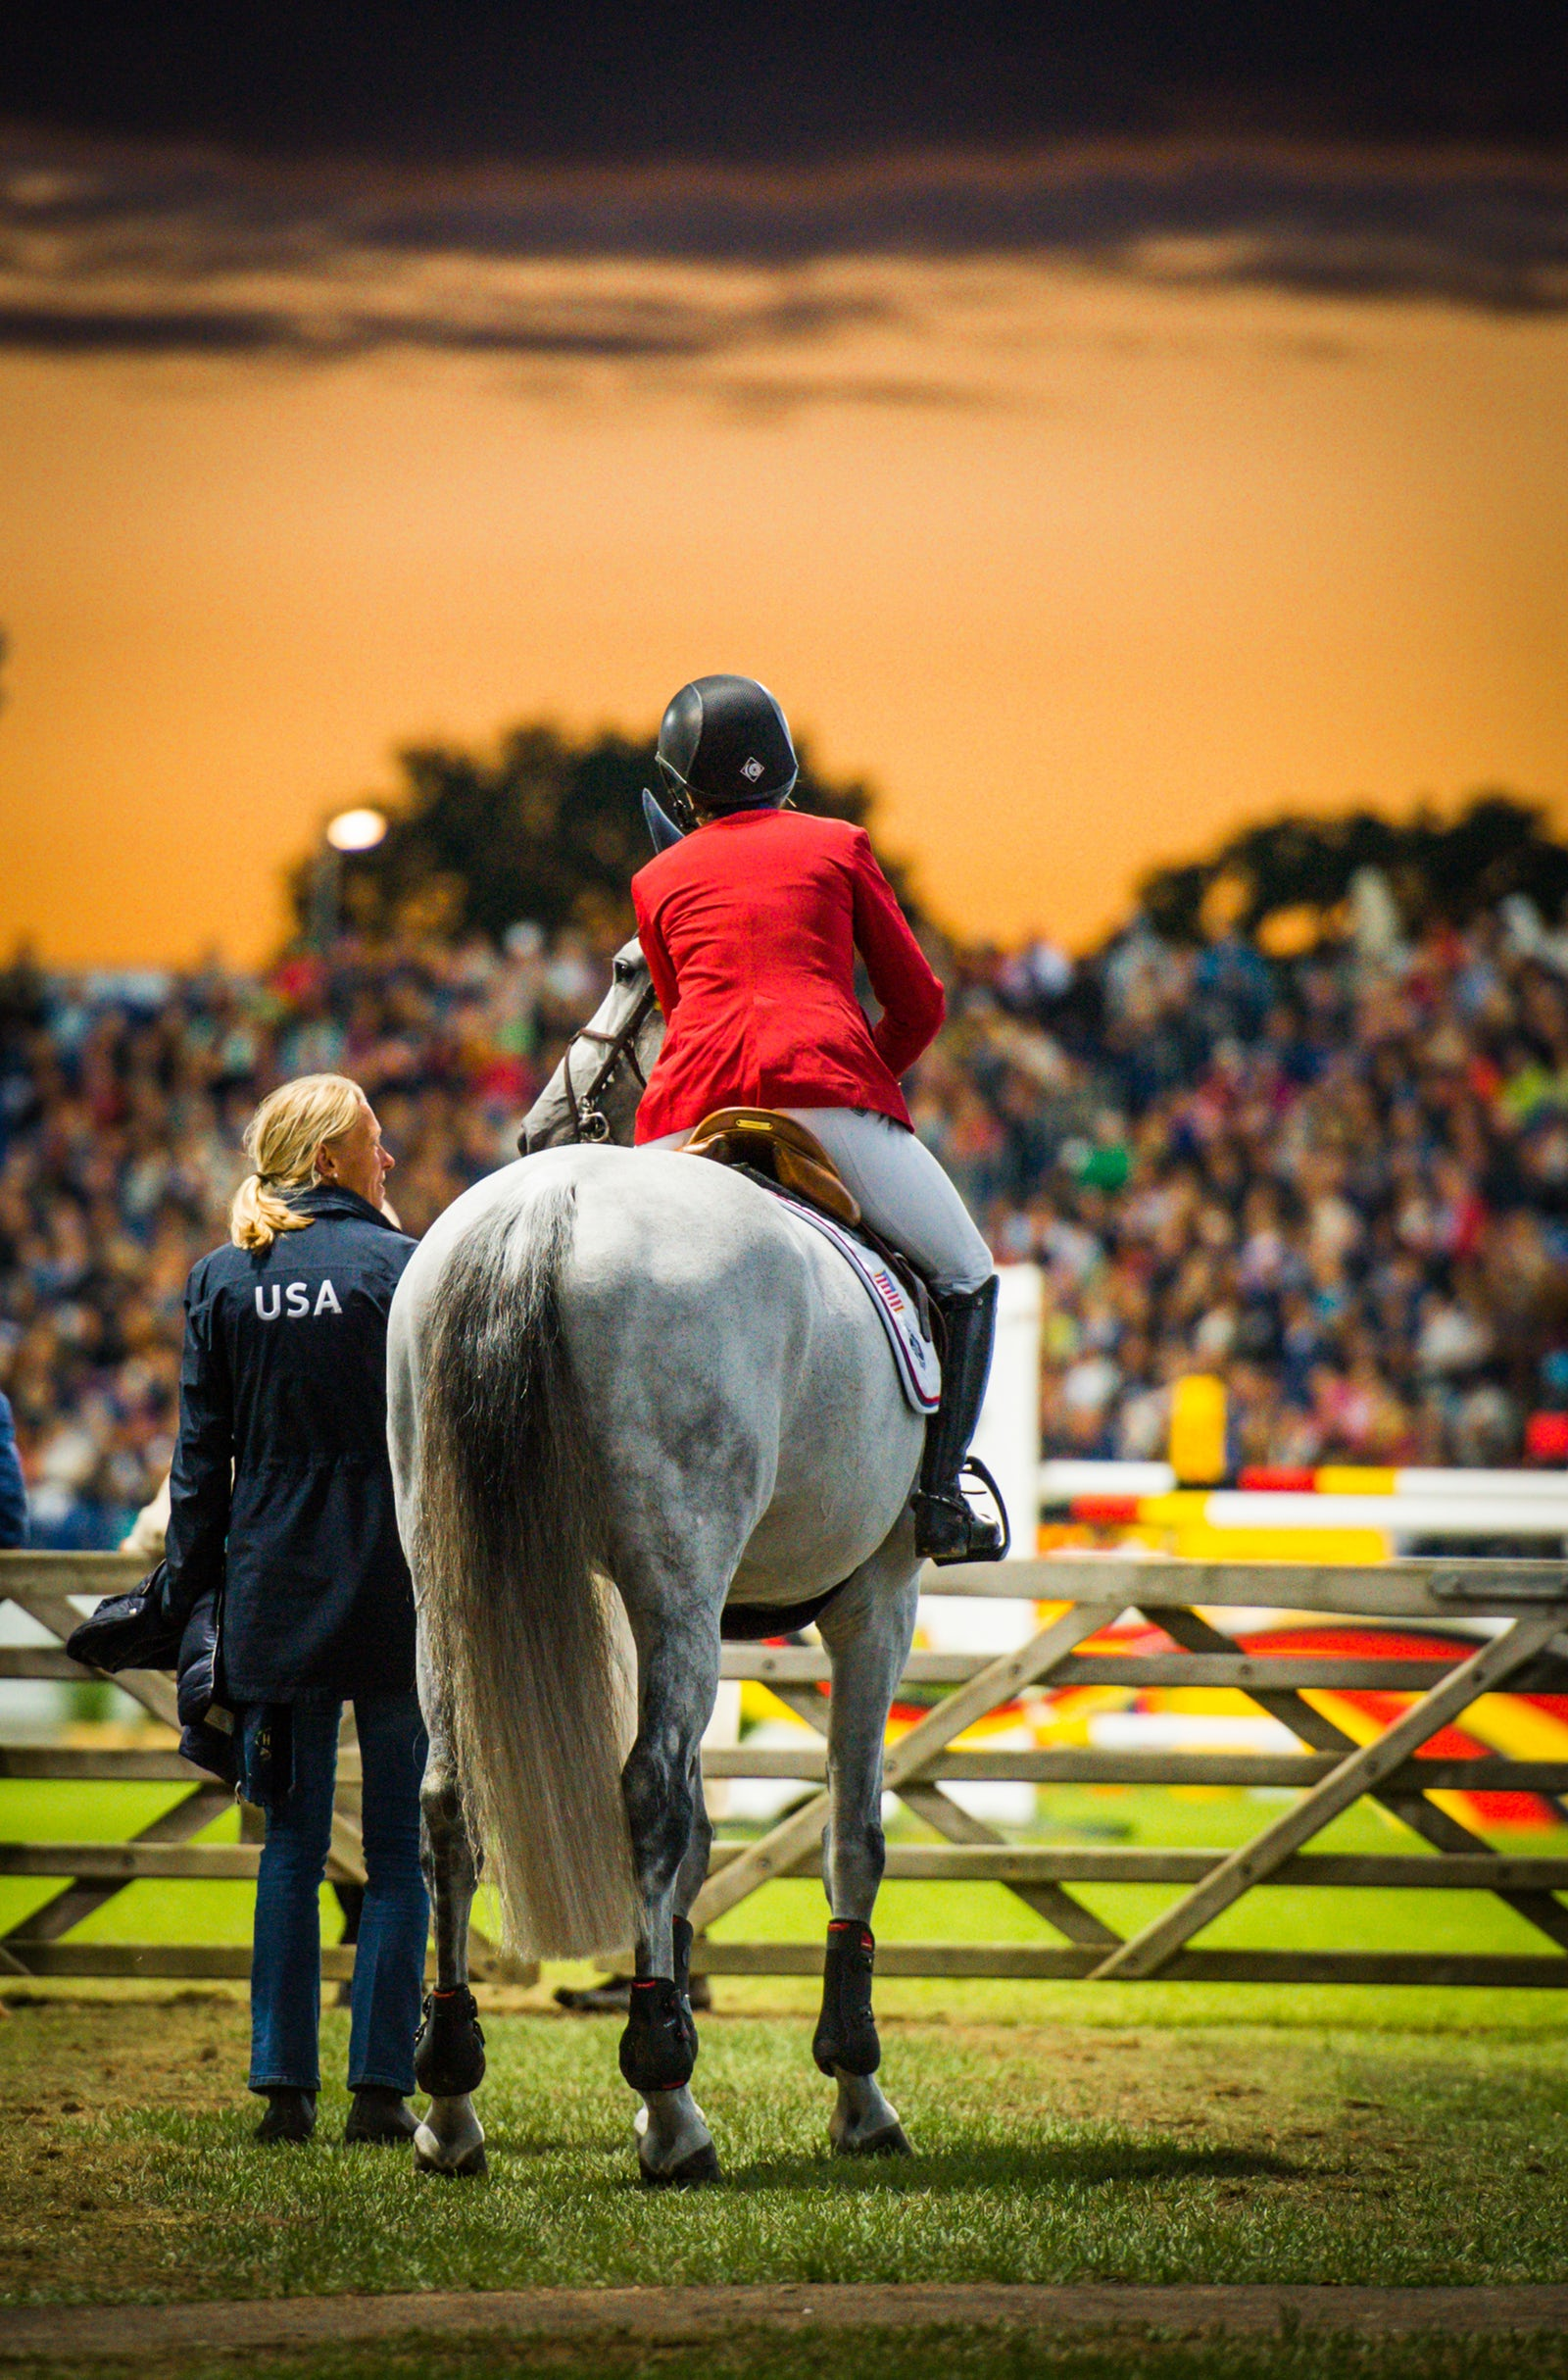 CHIO Aachen, Nations Cup 2016  Laura Kraut and Zeremonie, with longtime groom Johanna Burtsoff, for Team USA at the ingate, July 2016.